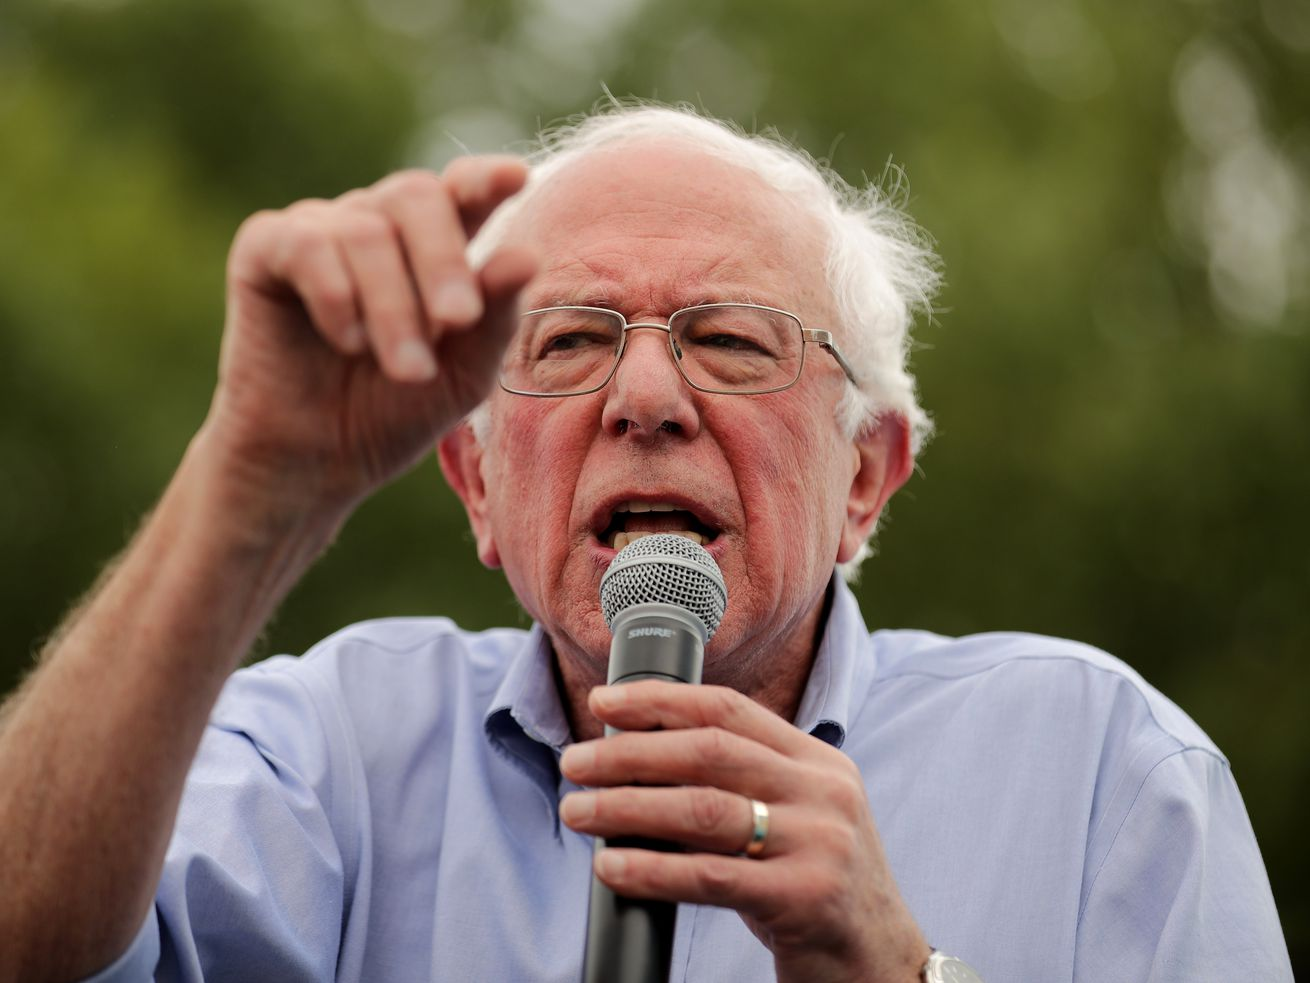 Democratic presidential candidate Bernie Sanders delivers a campaign speech at the Des Moines Register Political Soapbox during the Iowa State Fair on August 11, 2019.